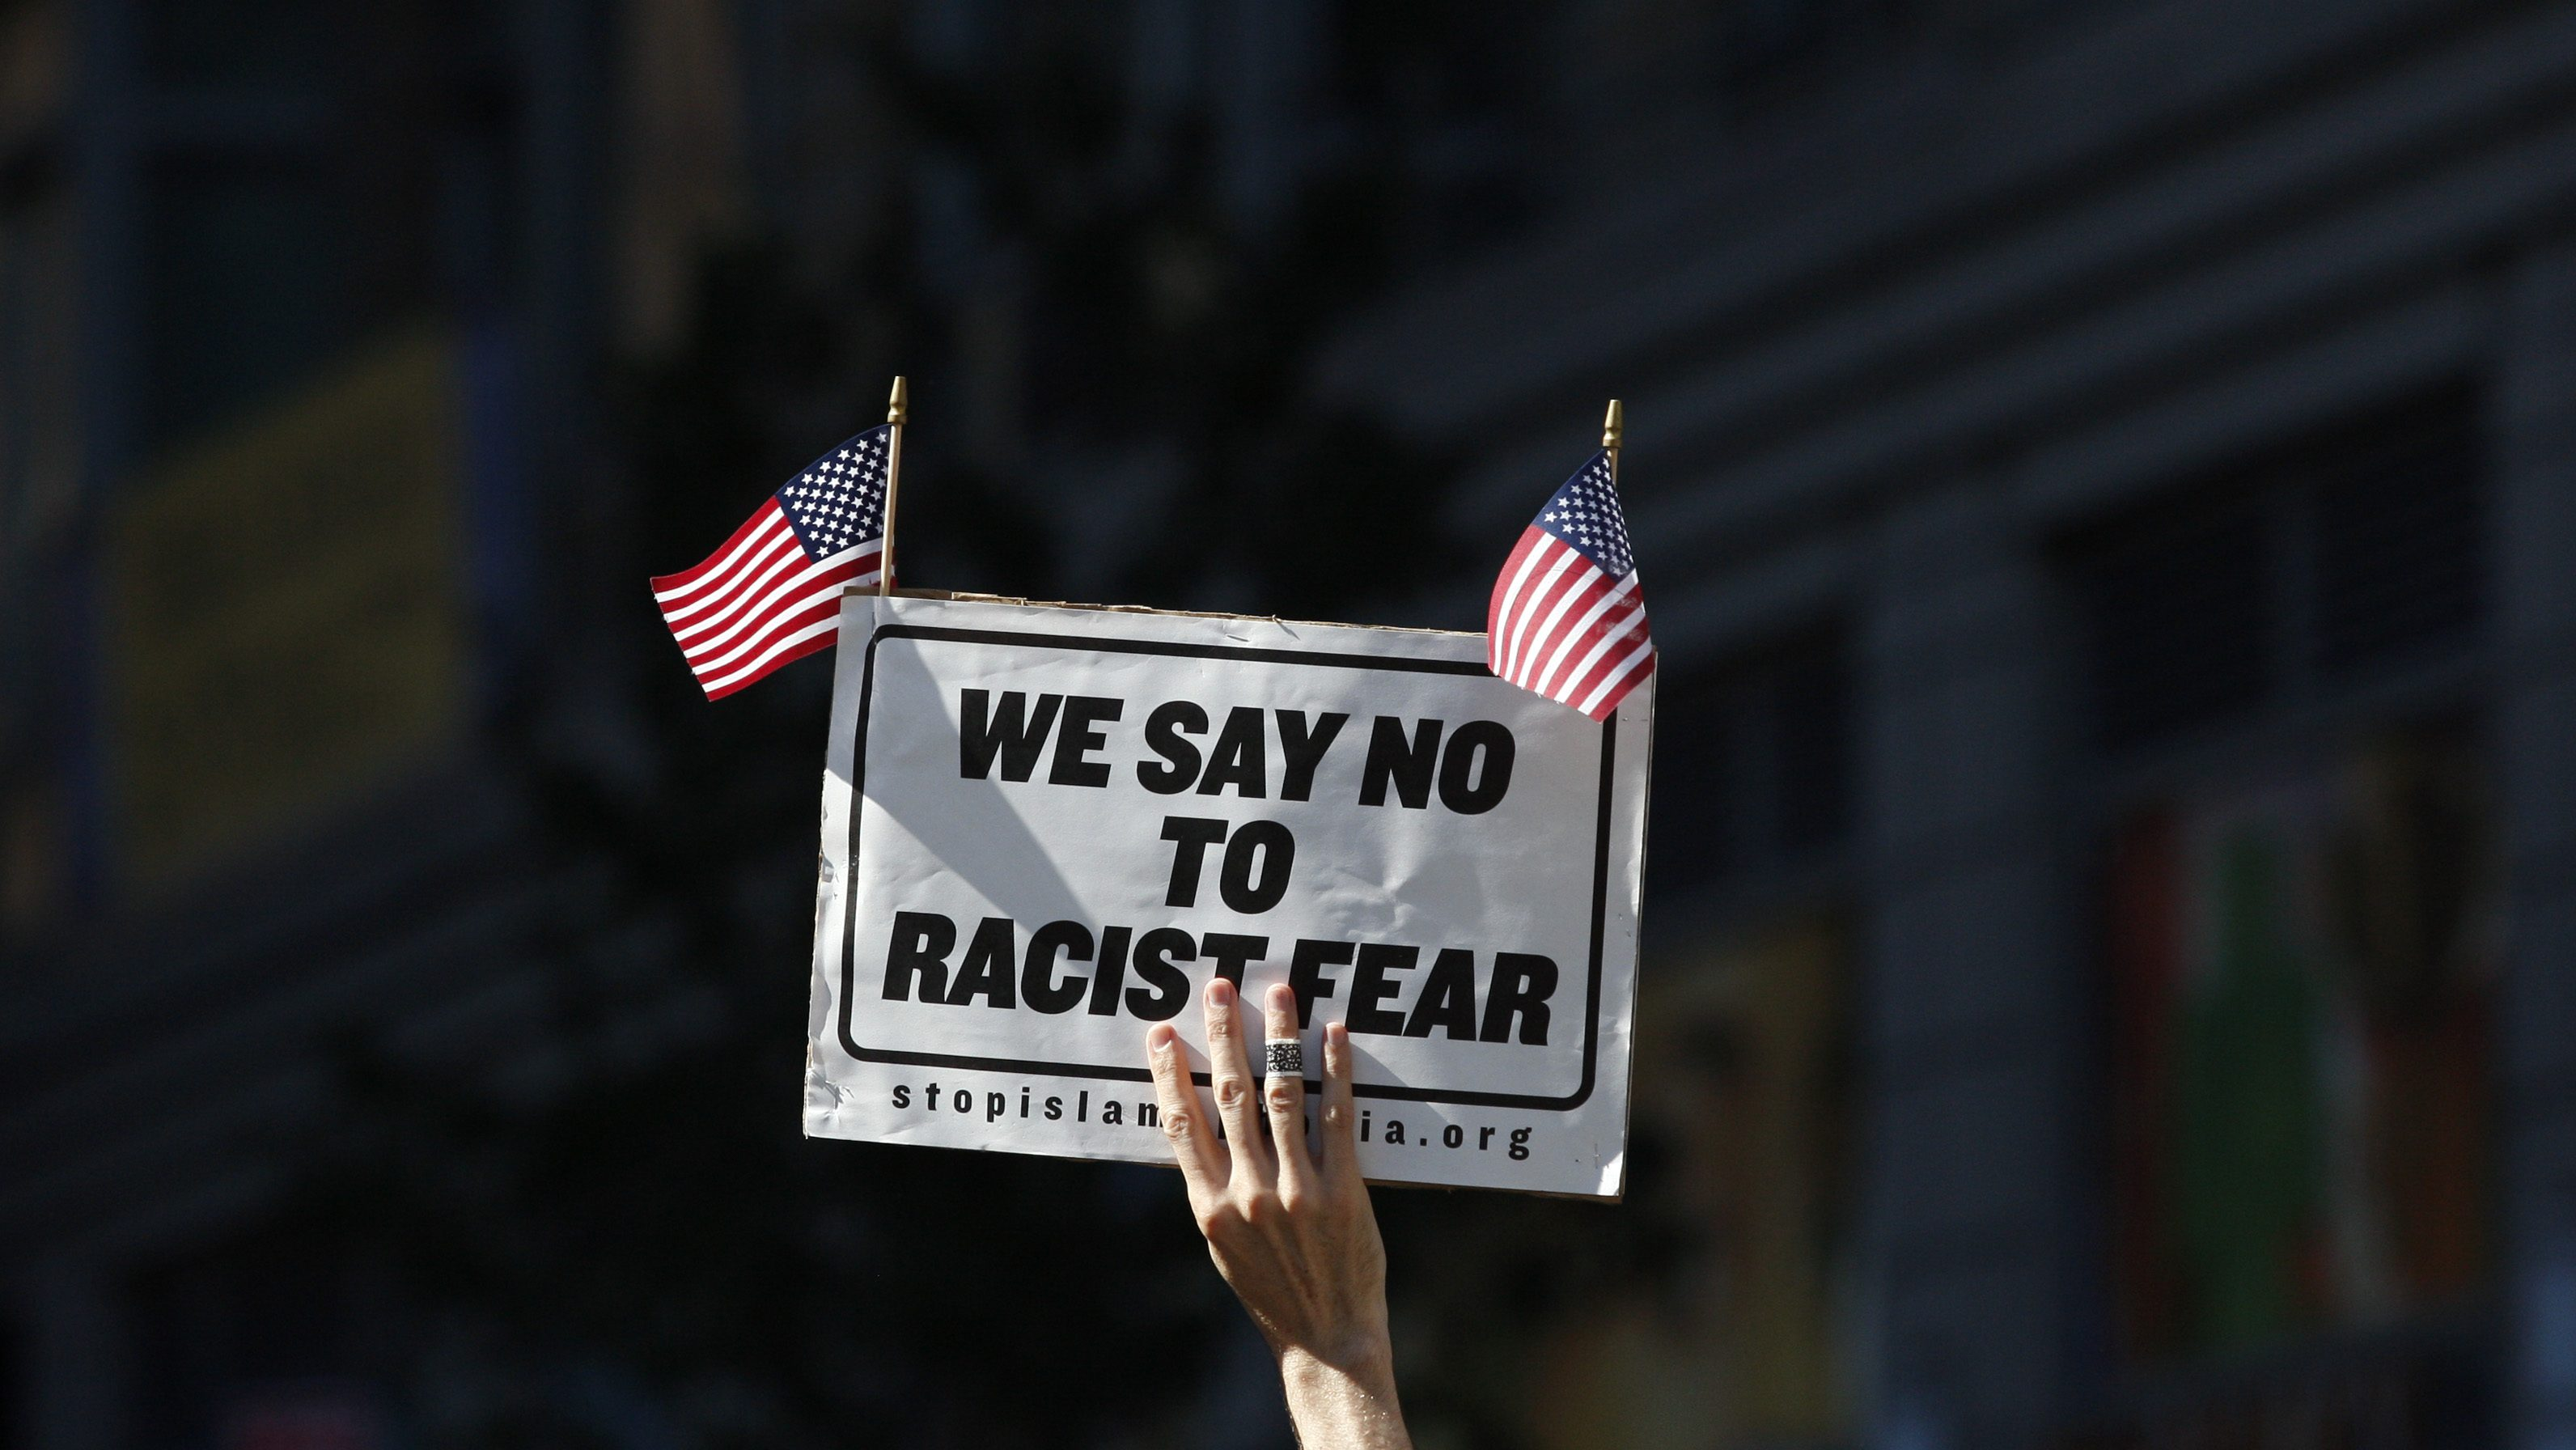 A demonstrator holds a sign above his head during a rally held in support of a proposed Islamic cultural centre and mosque in New York September 11, 2010. REUTERS/Jessica Rinaldi (UNITED STATES - Tags: SOCIETY POLITICS CIVIL UNREST RELIGION IMAGES OF THE DAY) - RTR2I7P8